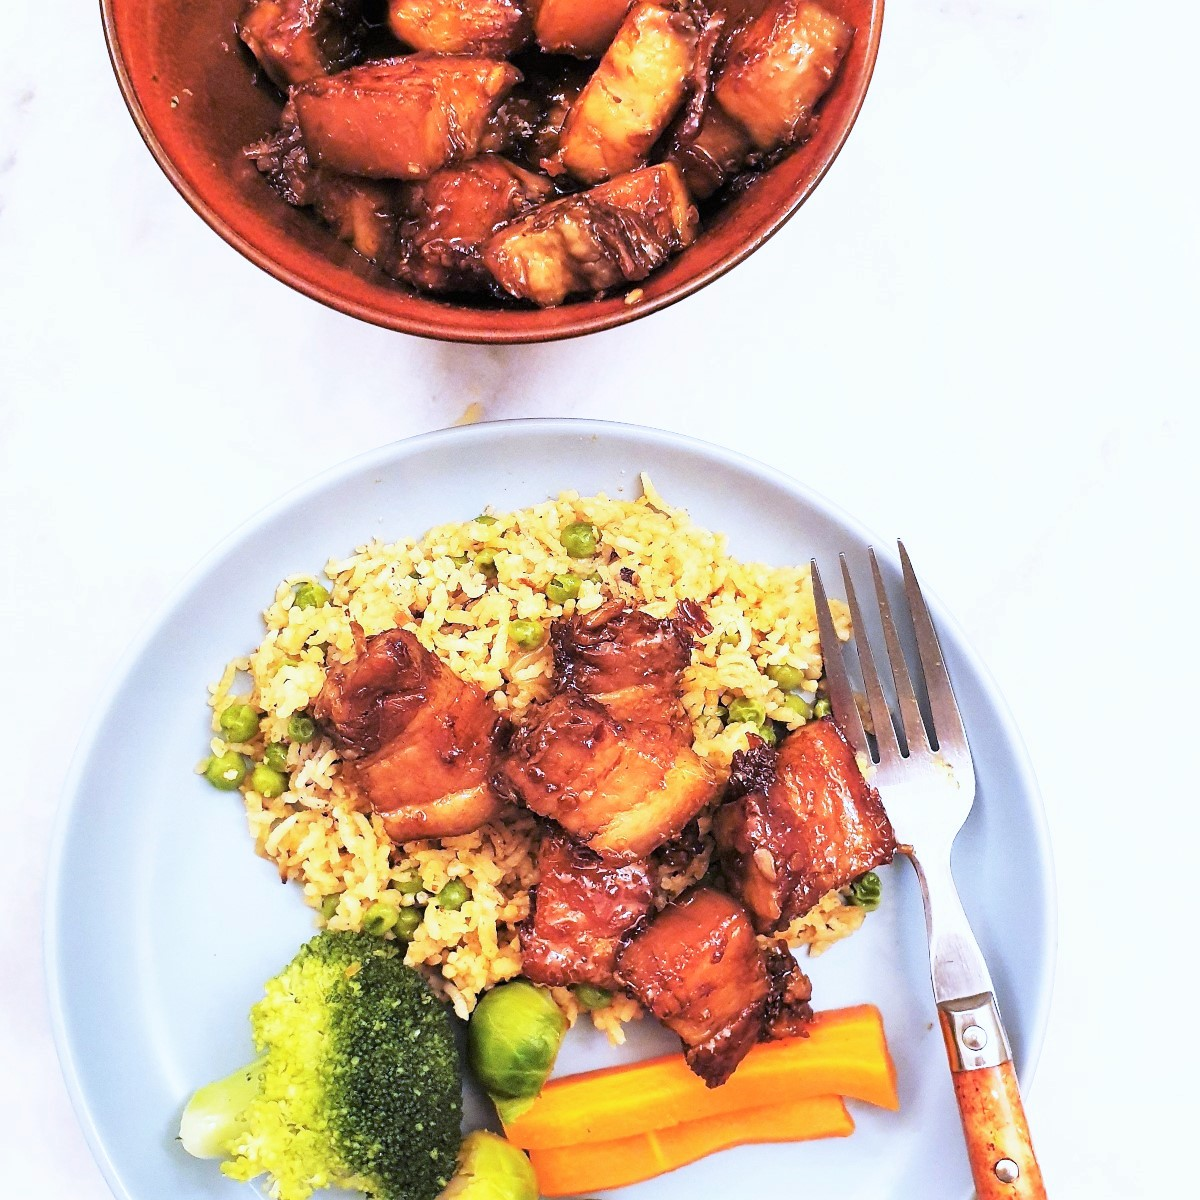 A plate of pork belly with rice and vegetables.